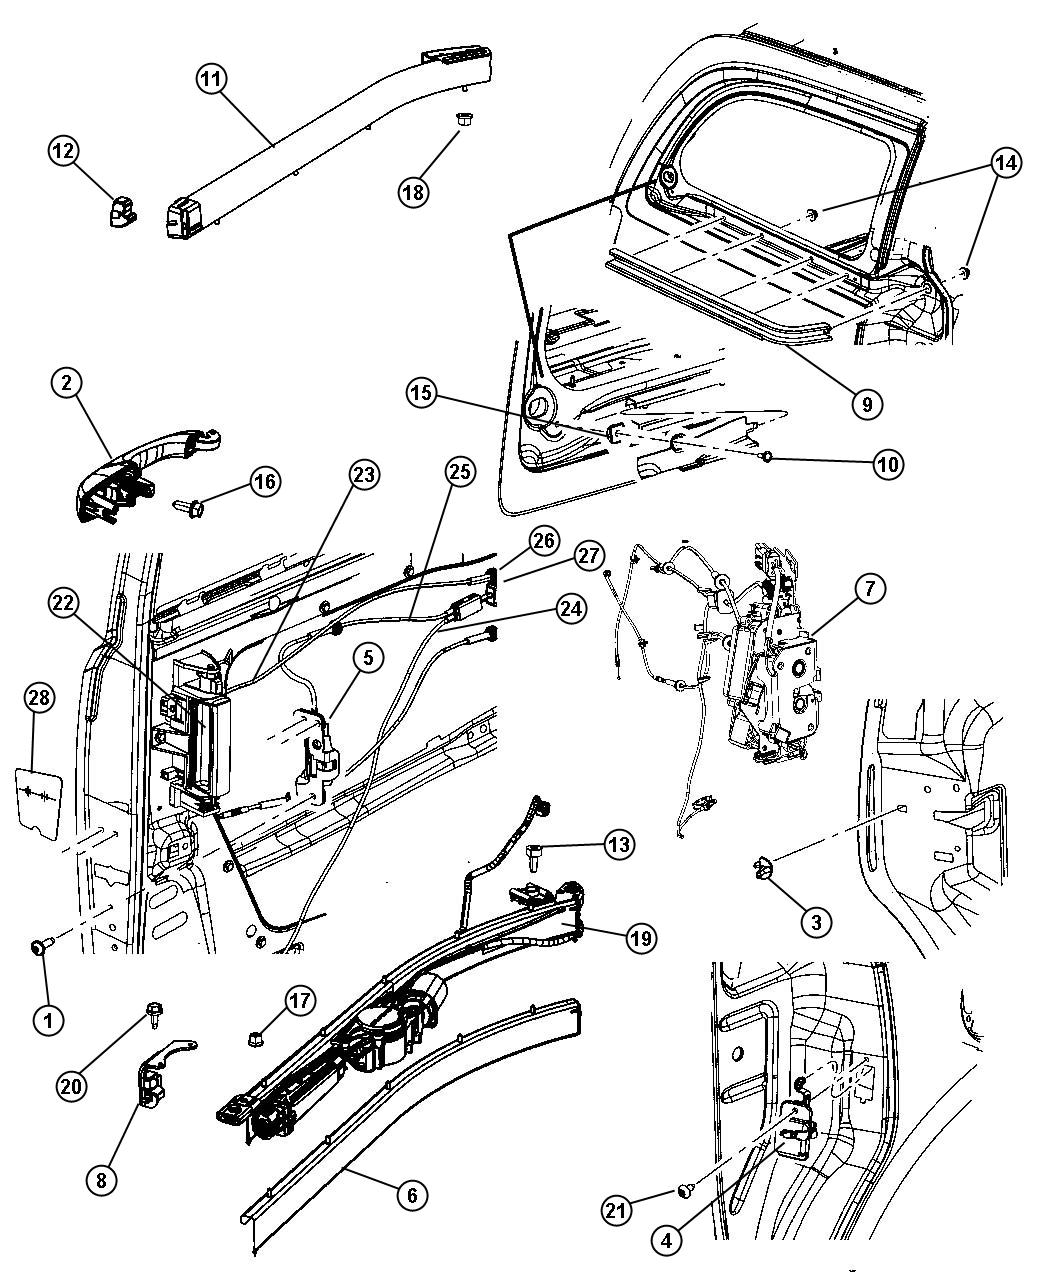 Mopar Sensor Blind Spot Detection 56038942aa besides 76b80 67 Ford Mustang No Power Red Green Wire Solenoid together with 55 59 2nd Series Chevy Pickup together with Location Of Ambient Air Temperature Sensor moreover P 0996b43f81b3c540. on 2012 chrysler town